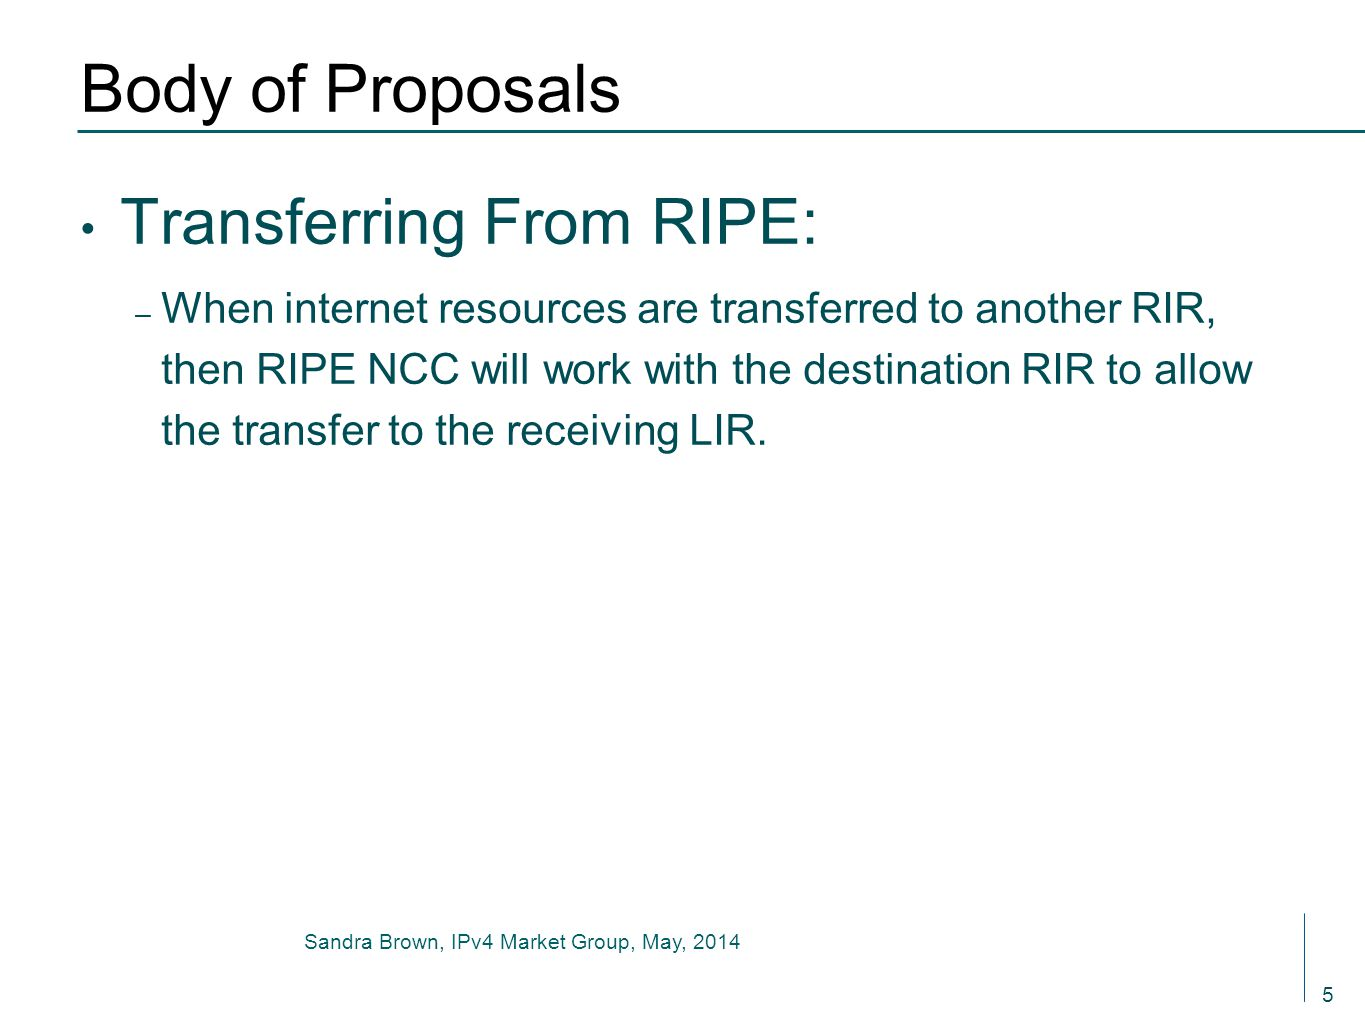 Sandra Brown, IPv4 Market Group, May, 2014 Body of Proposals Transferring From RIPE: – When internet resources are transferred to another RIR, then RI